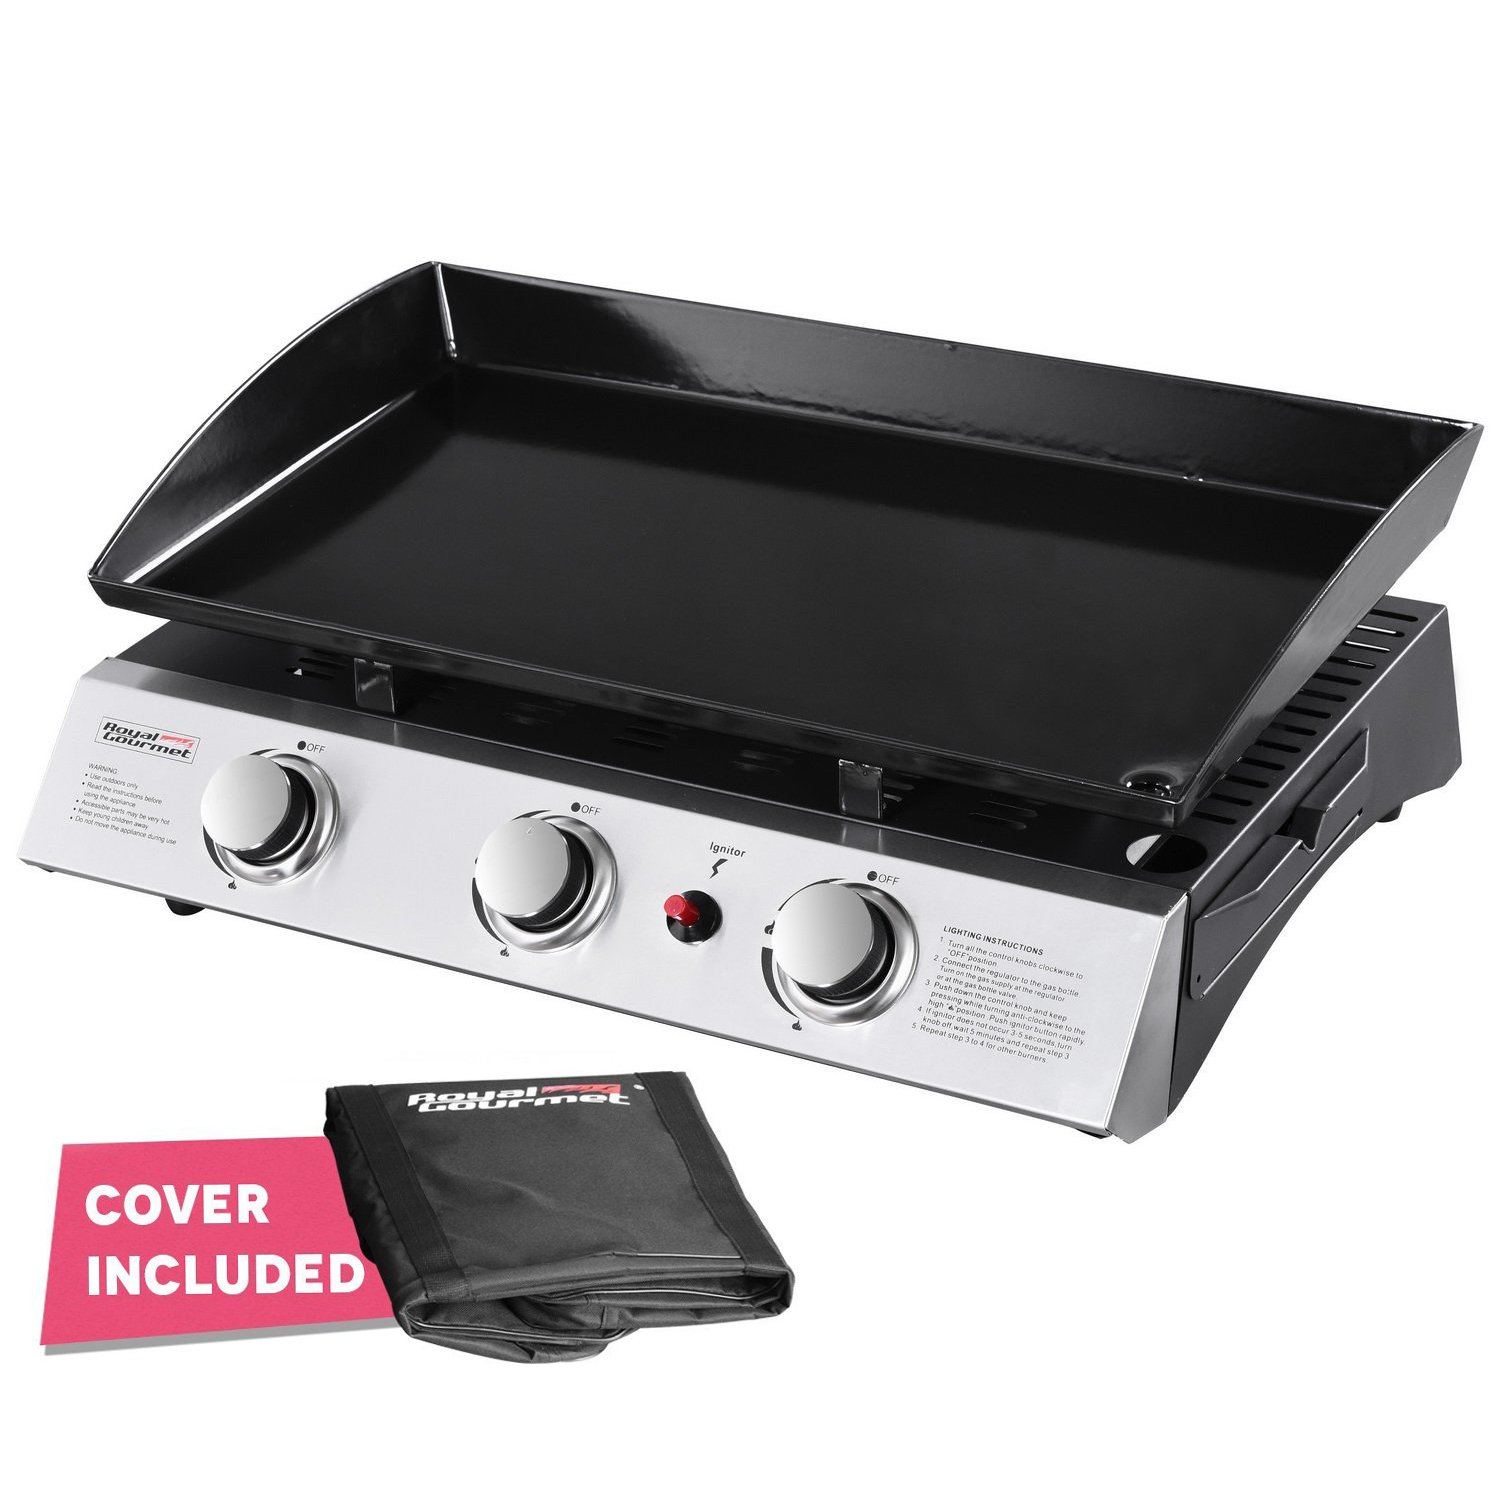 Royal Gourmet PD1300 Portable 3-Burner Propane Gas Grill Griddle Royal Gourmet Corp